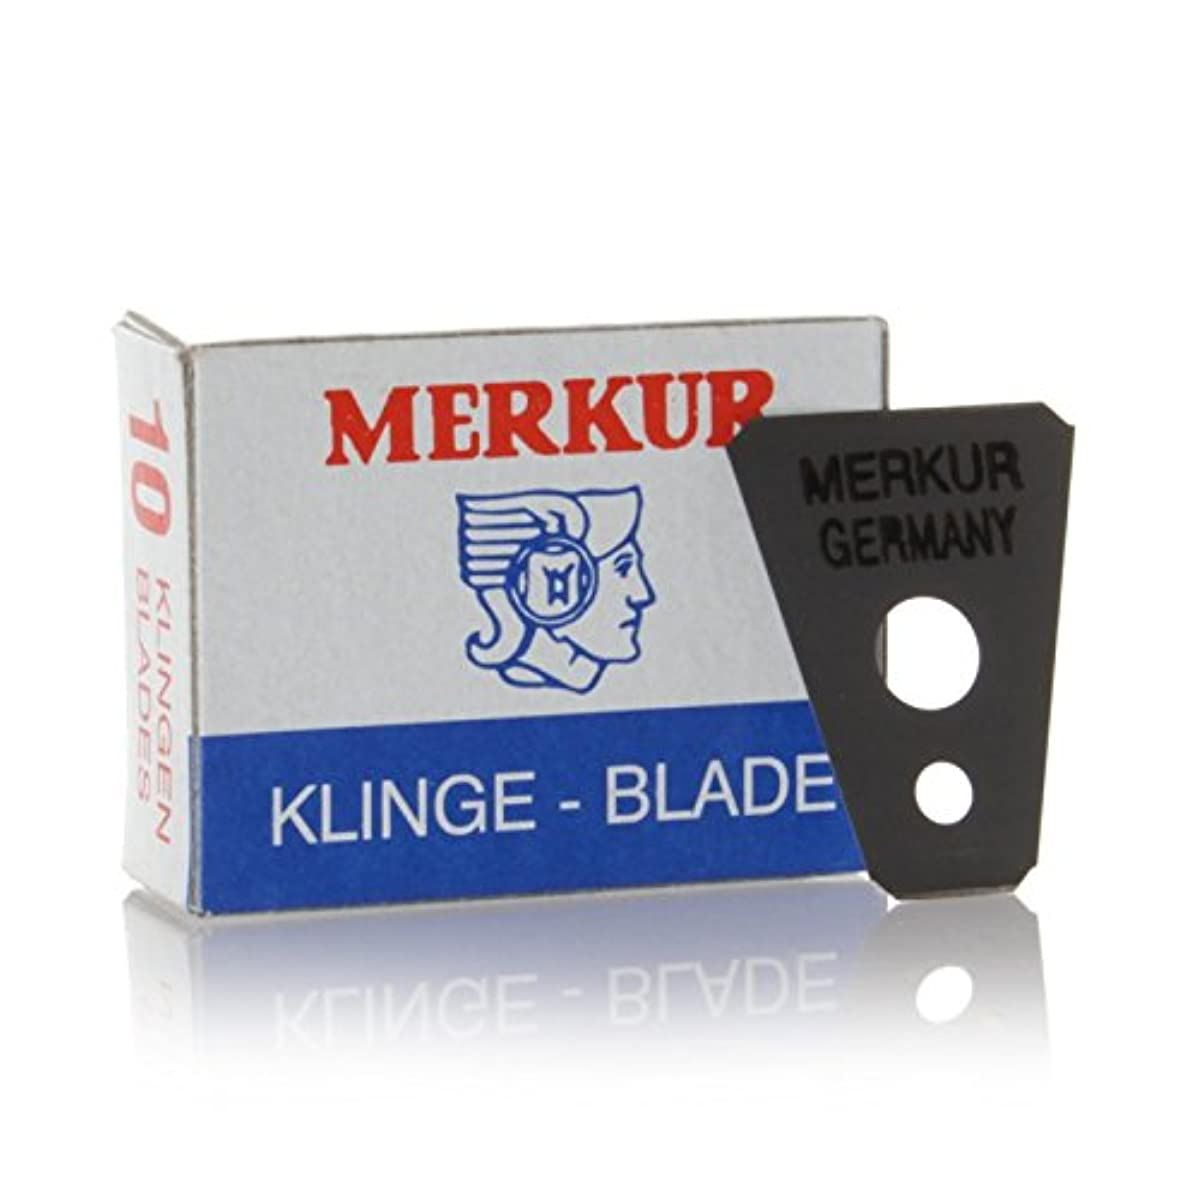 お尻頬骨提案MERKUR Solingen - Razor blades for moustache shaver, 10 pieces, 90908100